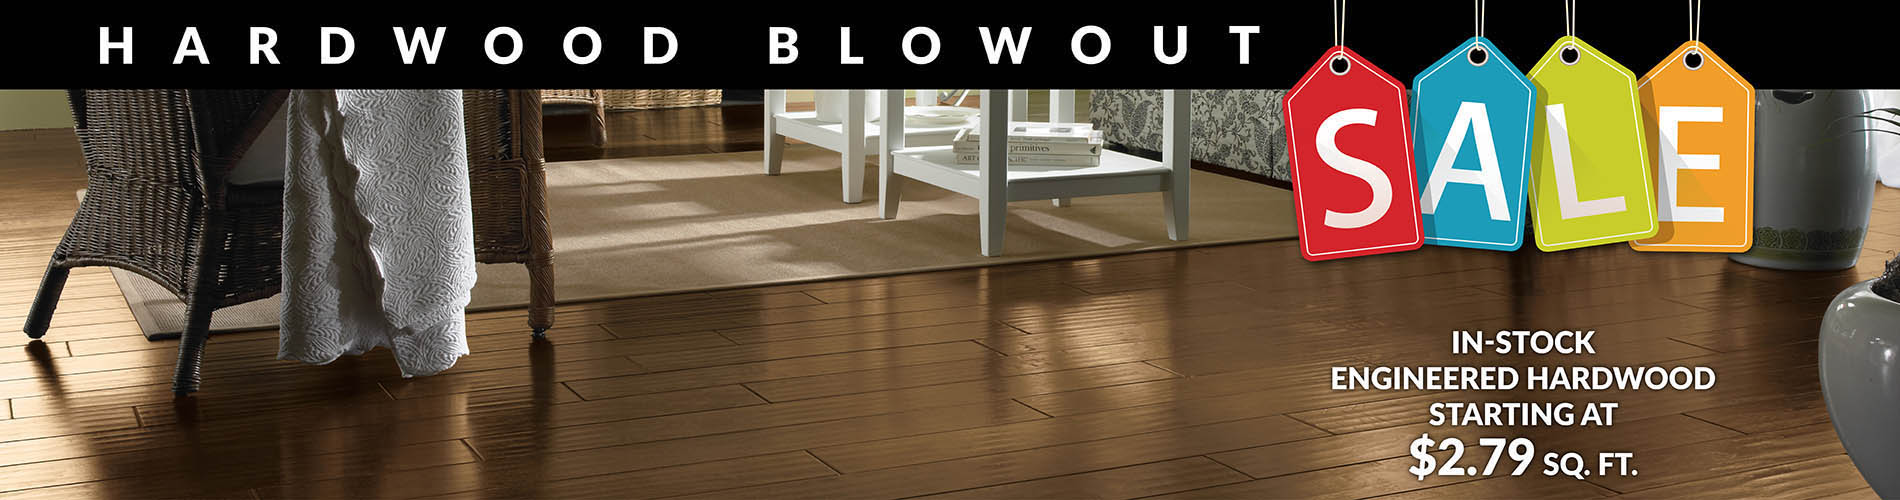 In-stock engineered hardwood starting at $2.79 sq.ft. during our hardwood blowout sale!